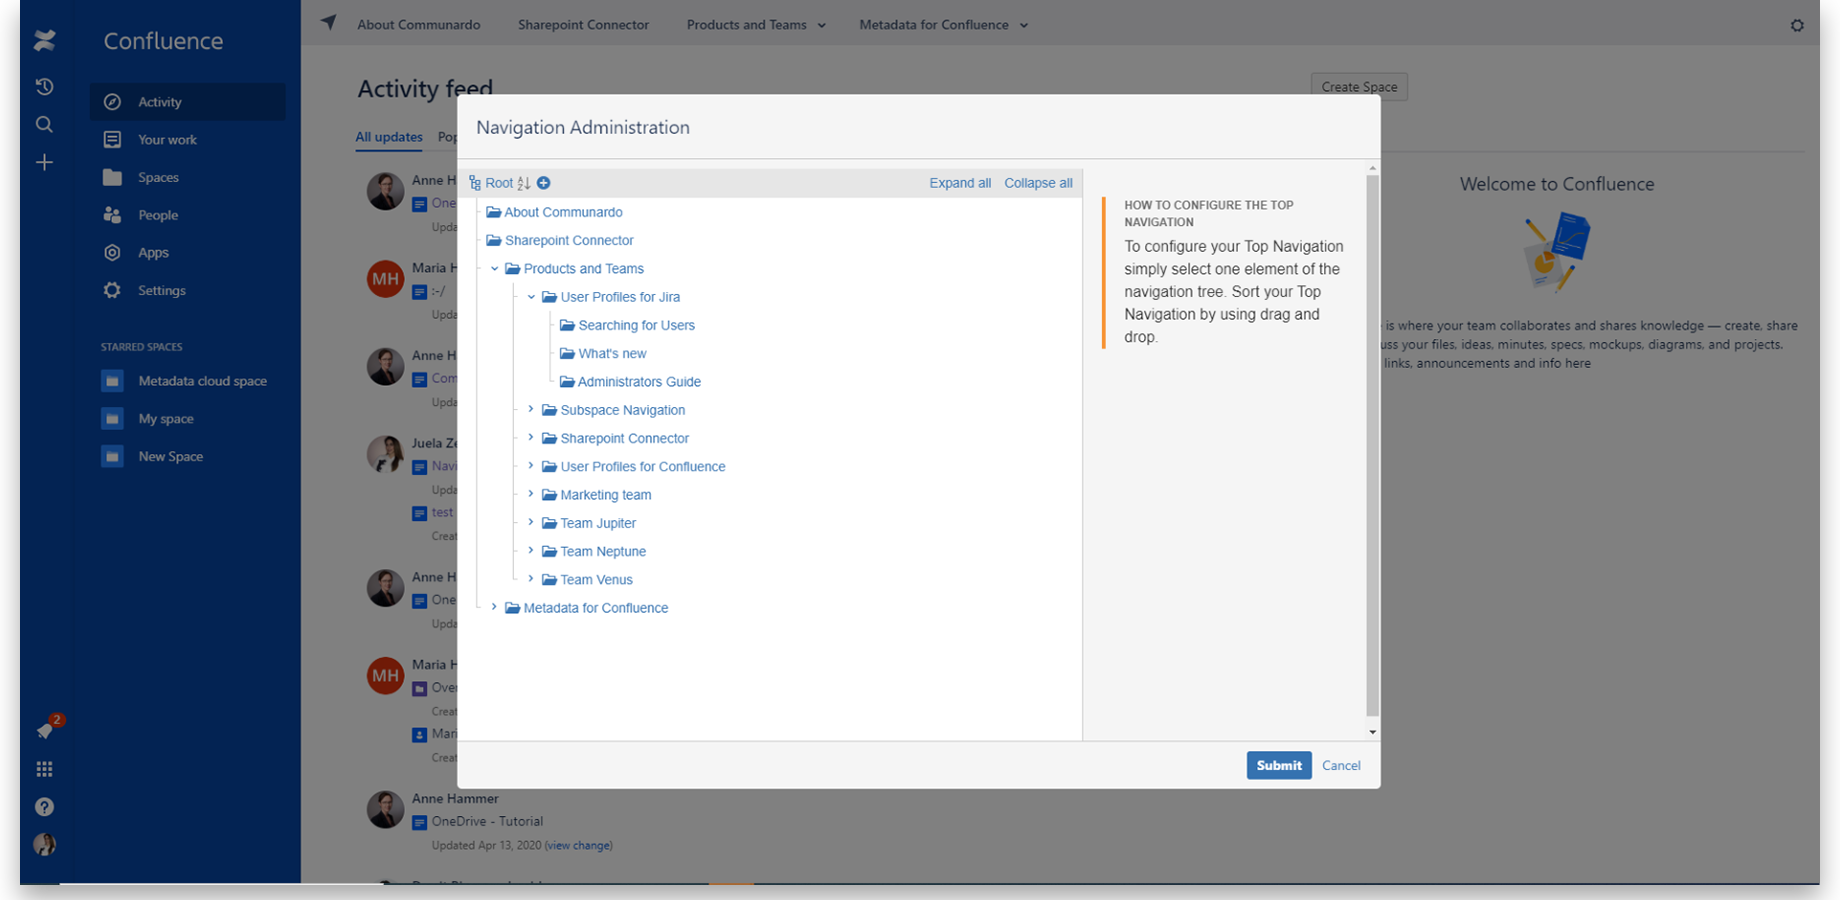 Get powerful personalization options with SubSpace Navigation for Confluence